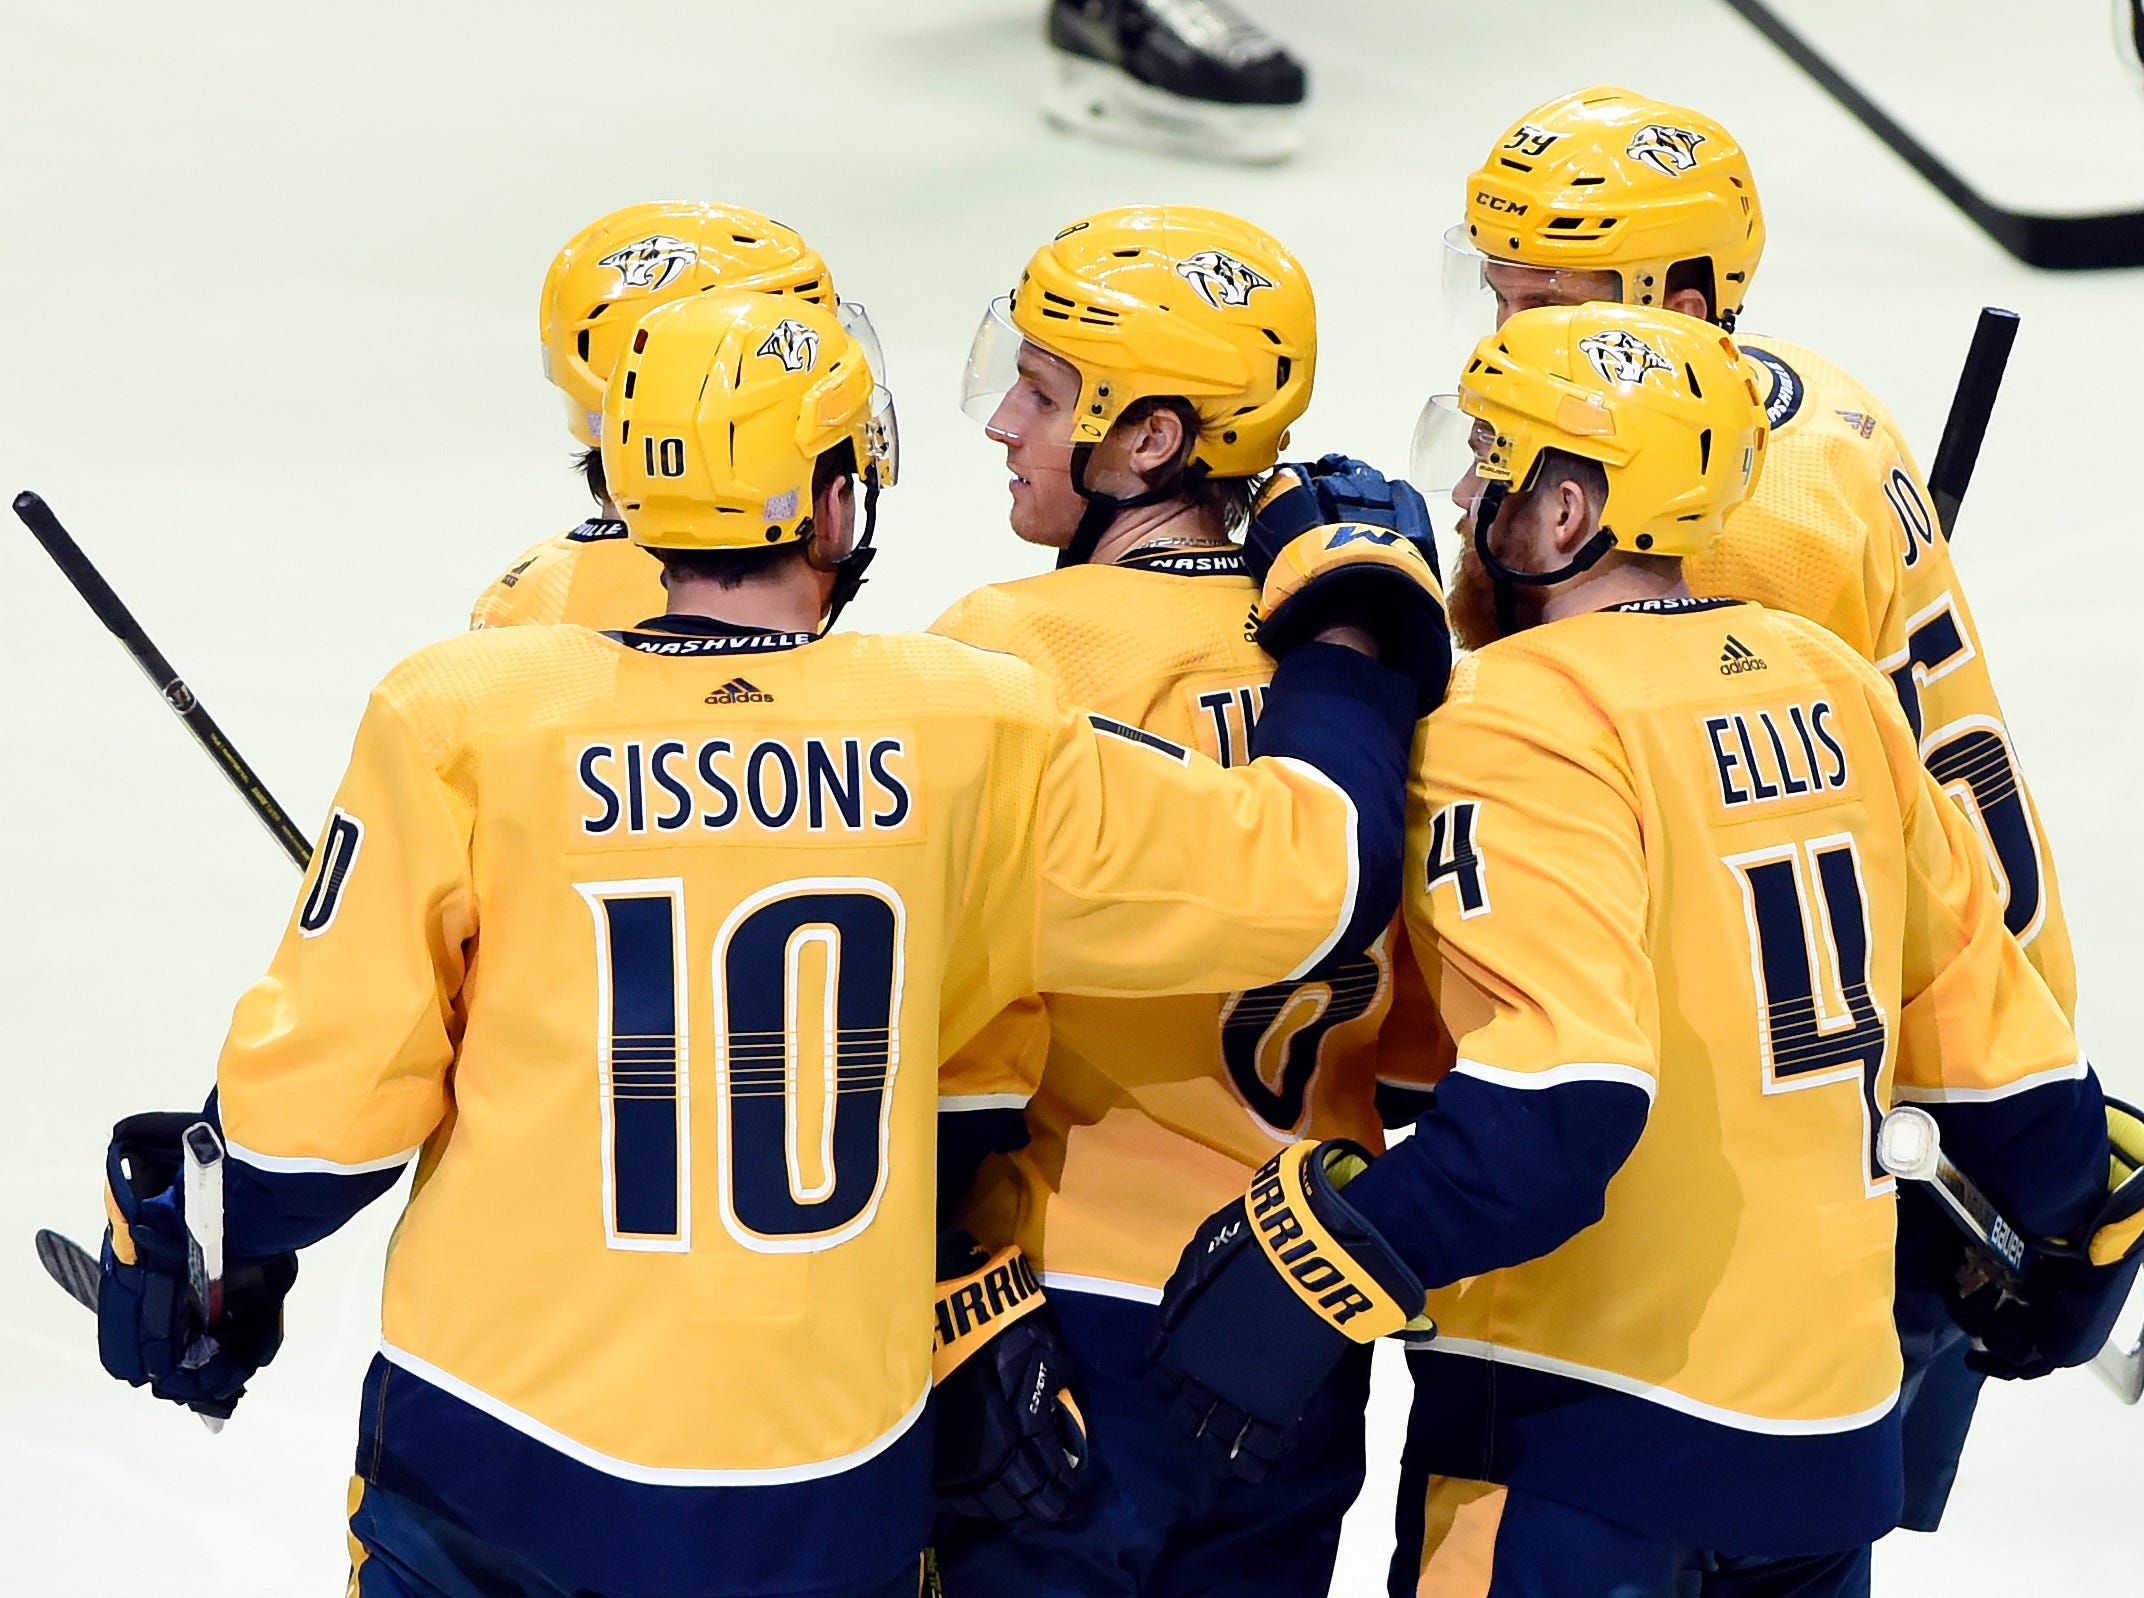 Nashville Predators center Kyle Turris, center, is congratulated after scoring a goal against the Los Angeles Kings during the second period of an NHL hockey game Saturday, Nov. 17, 2018, in Nashville, Tenn.